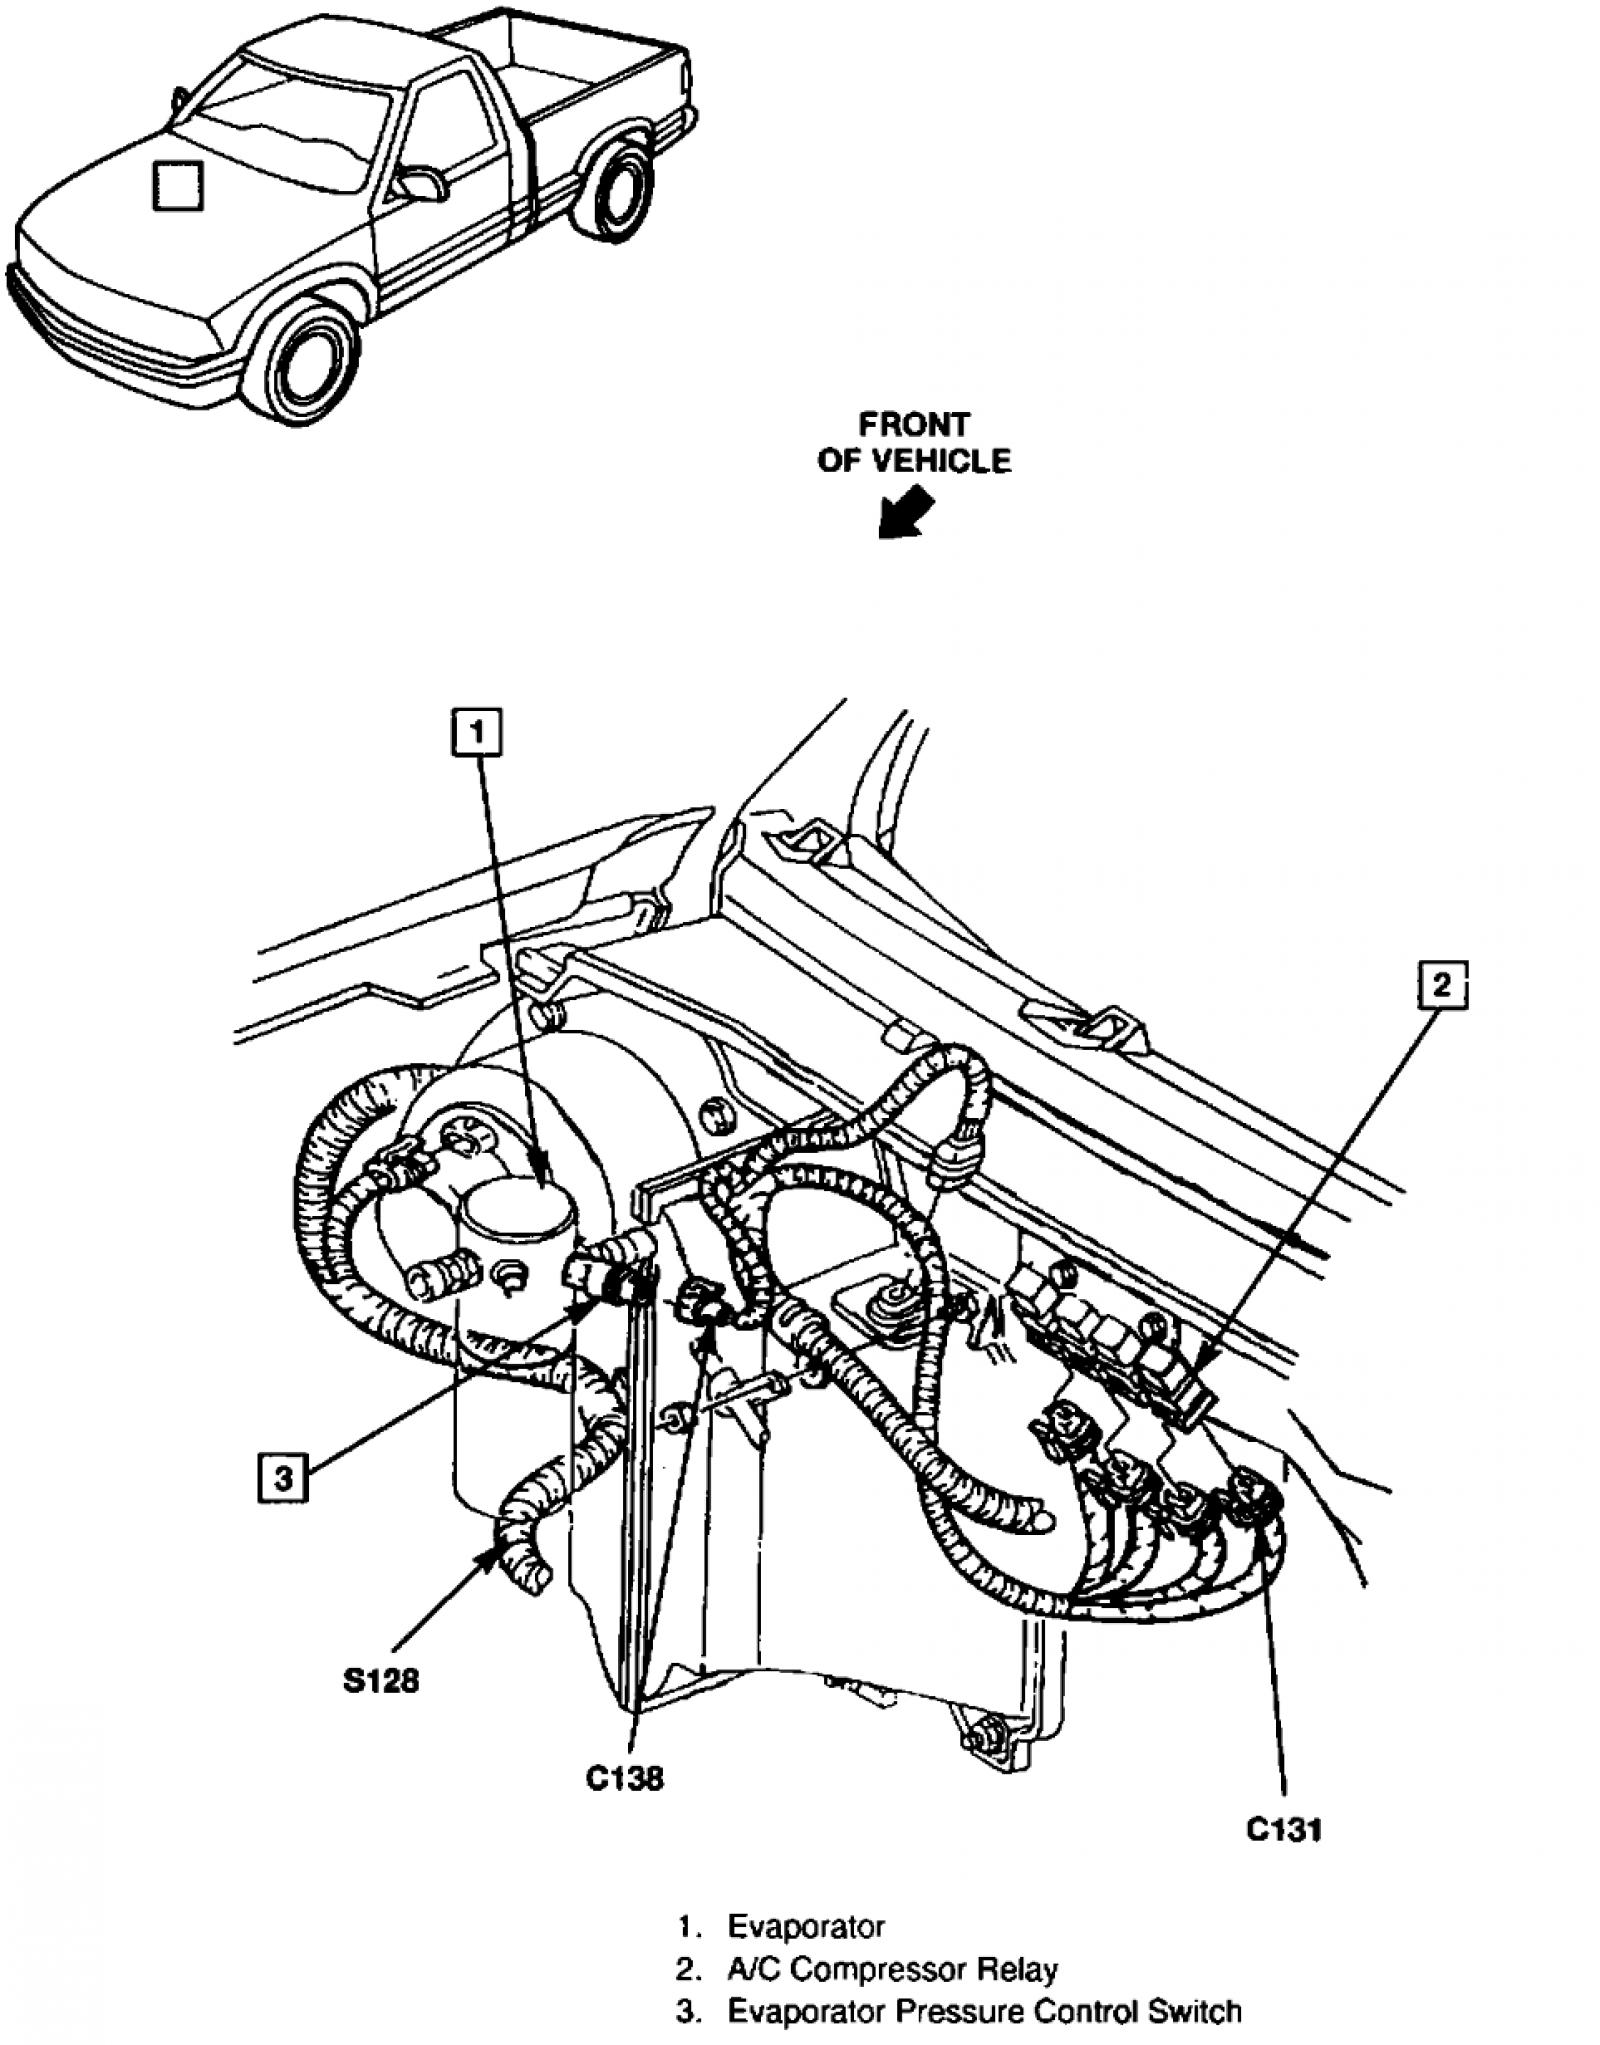 1998 Gmc Sonoma Under The Hood Diagram